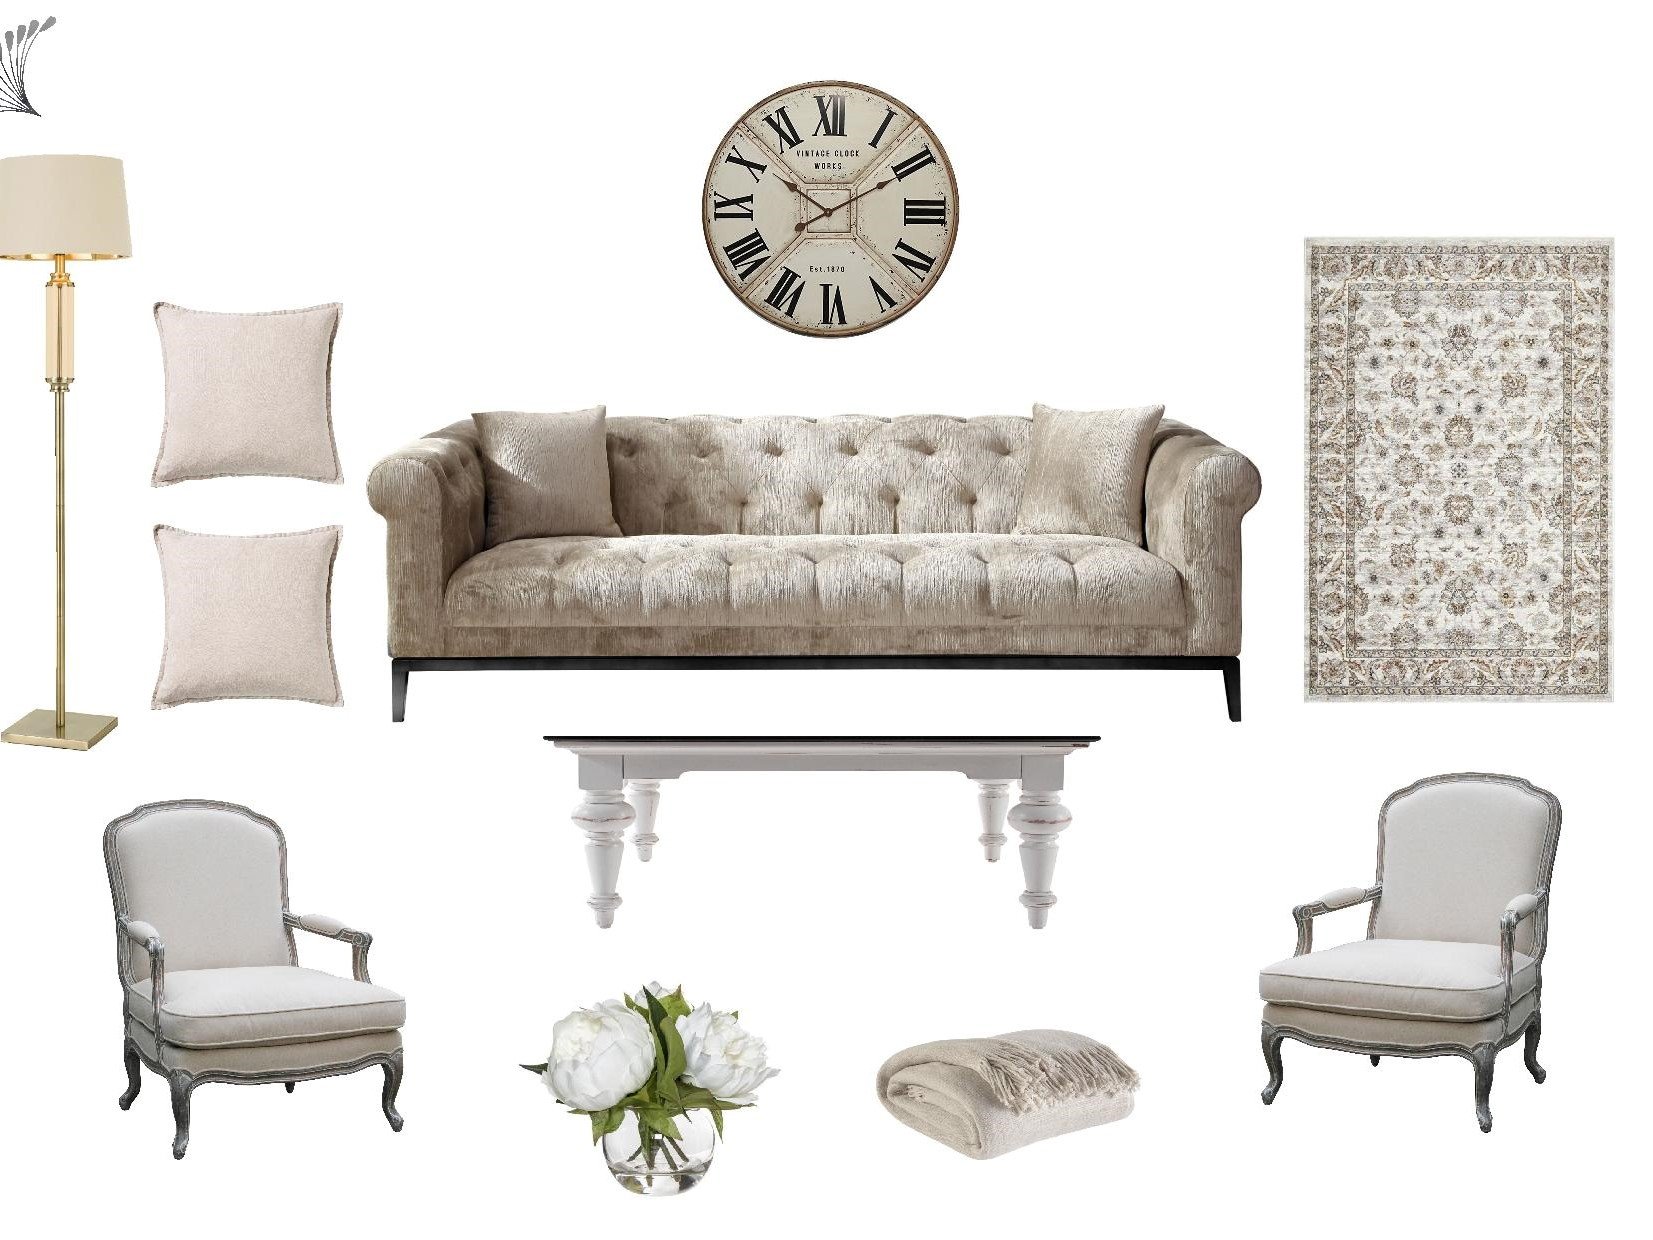 French Provincial Living Room Furniture Package